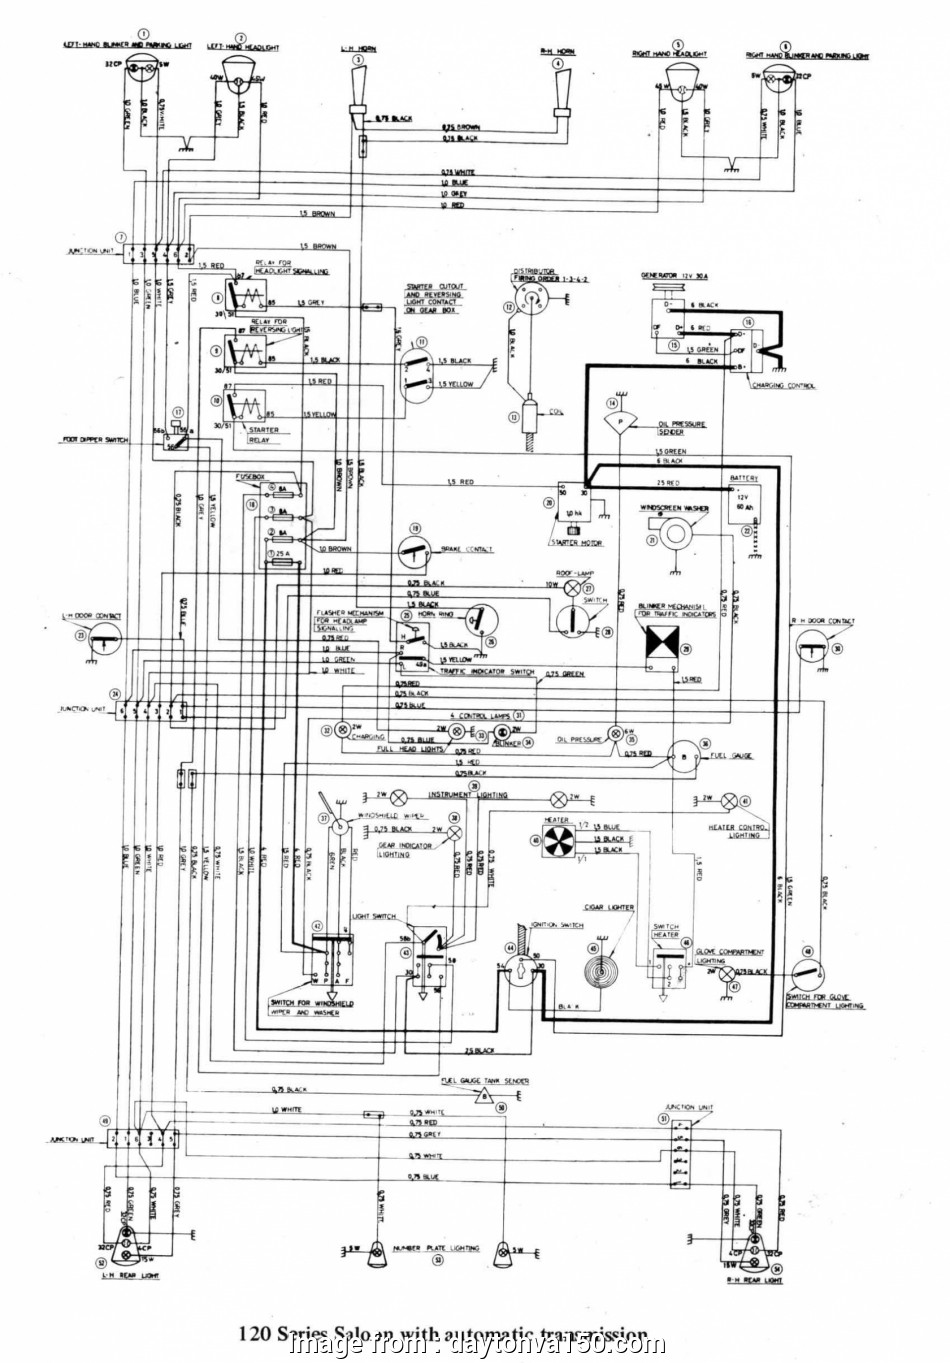 starter solenoid relay wiring diagram wiring diagram, ford starter relay  best wiring diagram, car